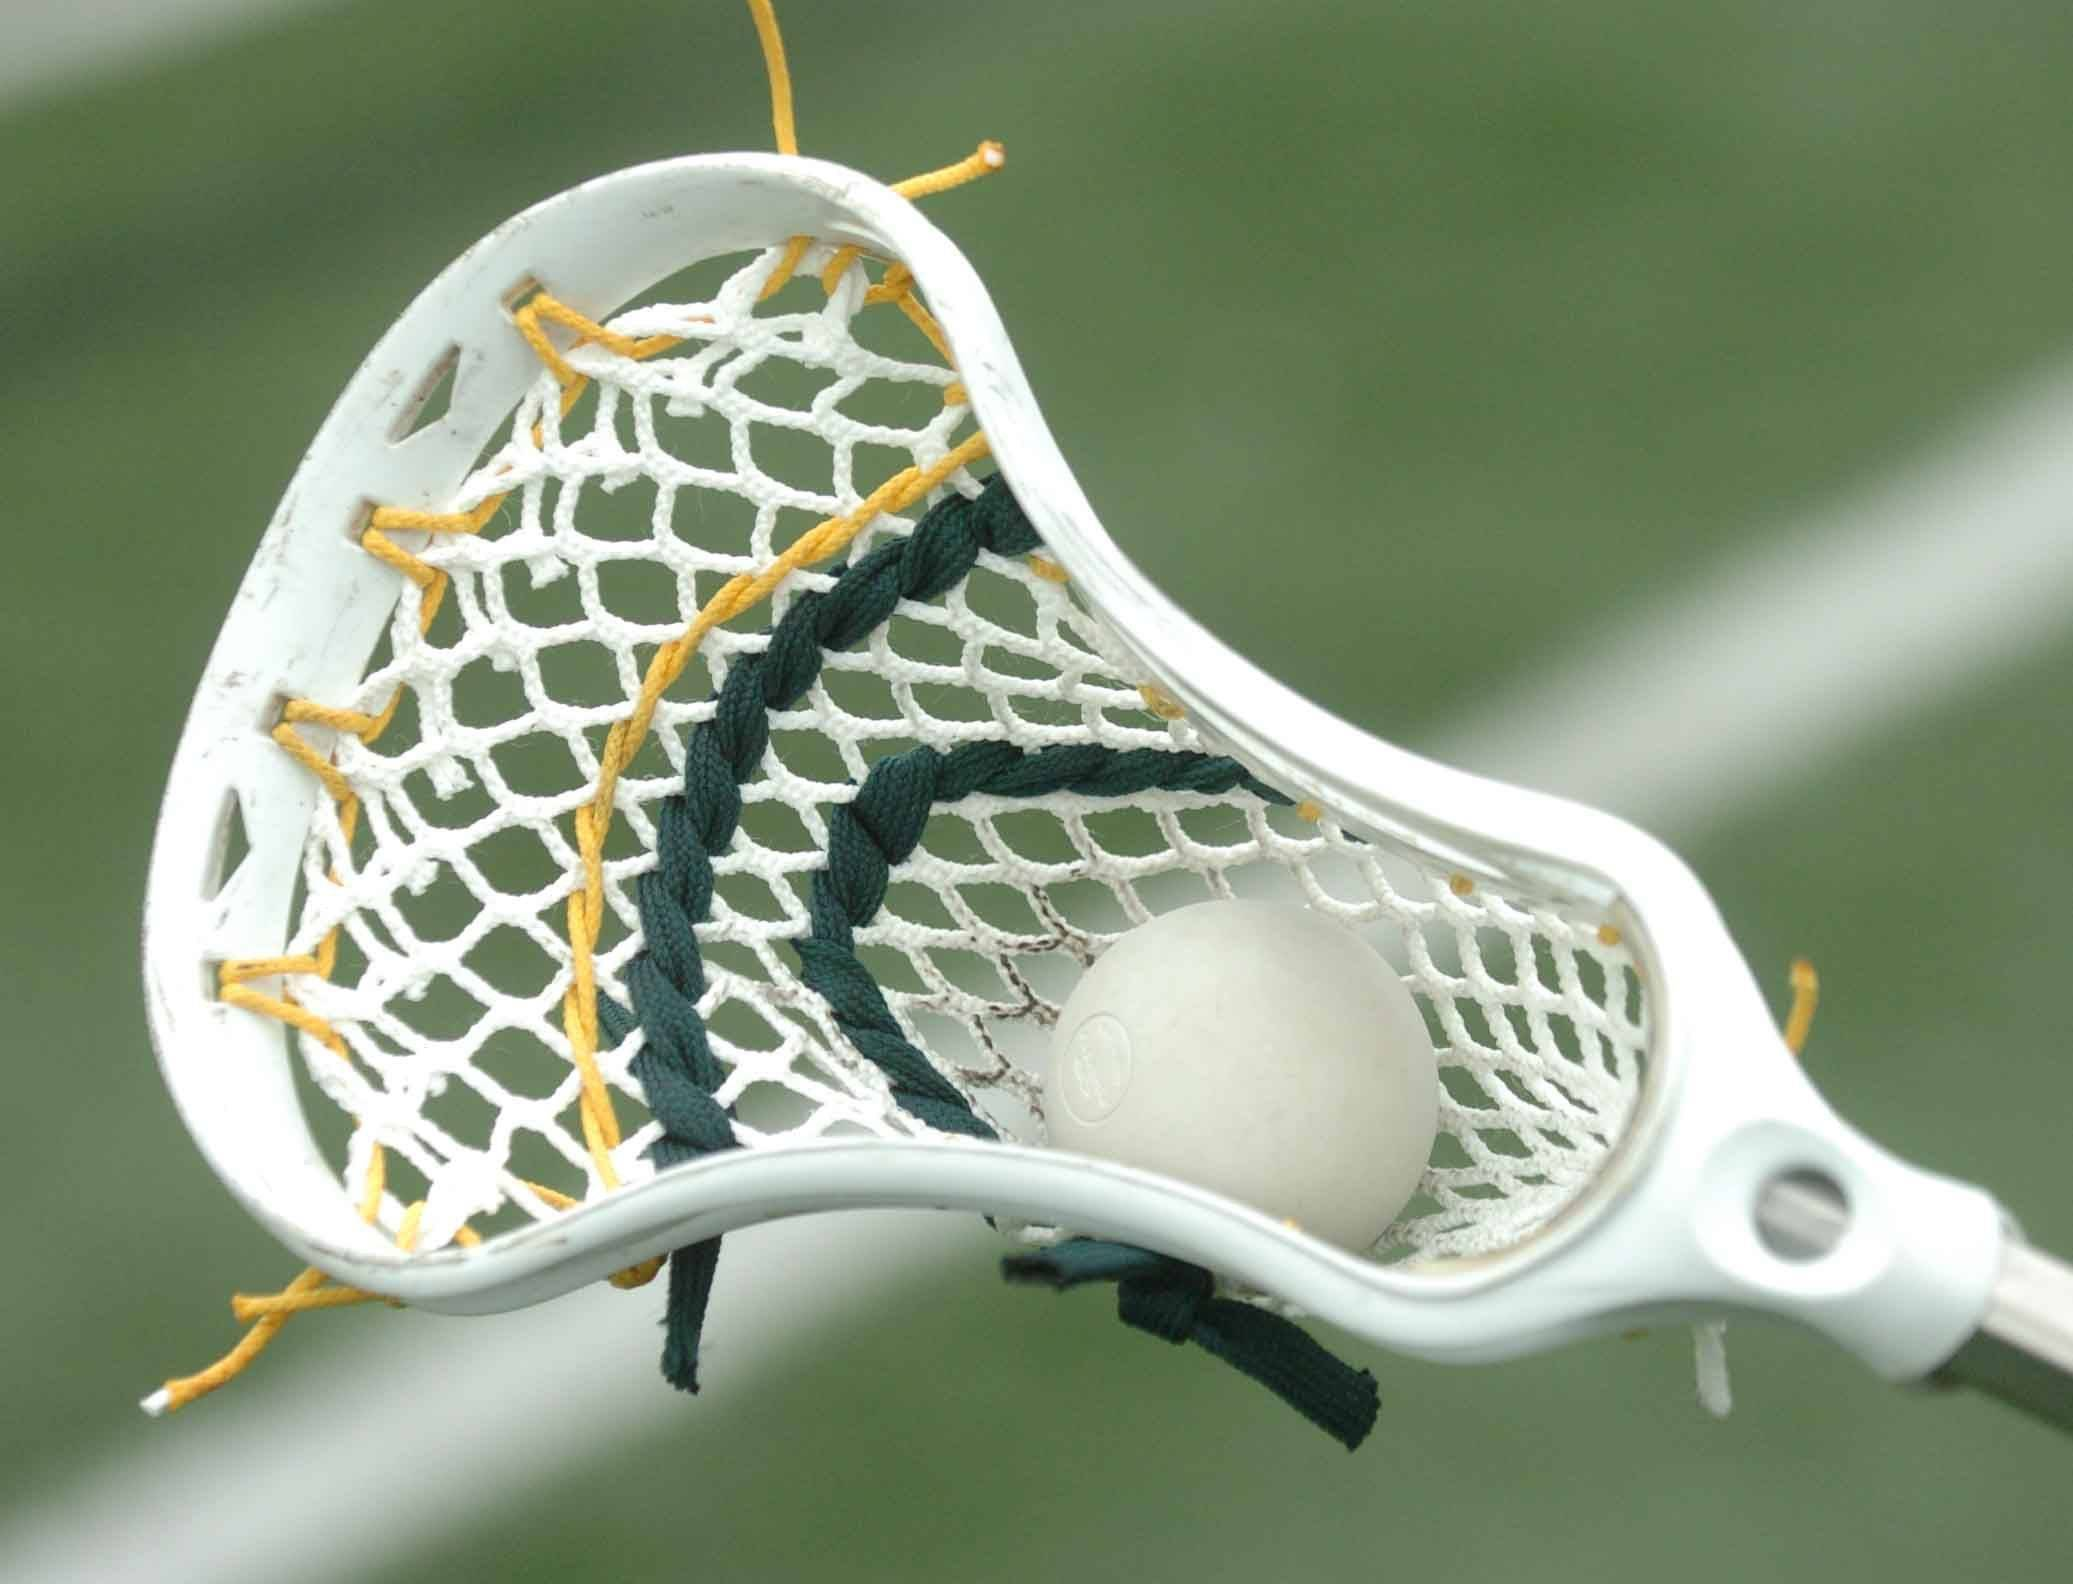 A lacrosse stick, net and ball.